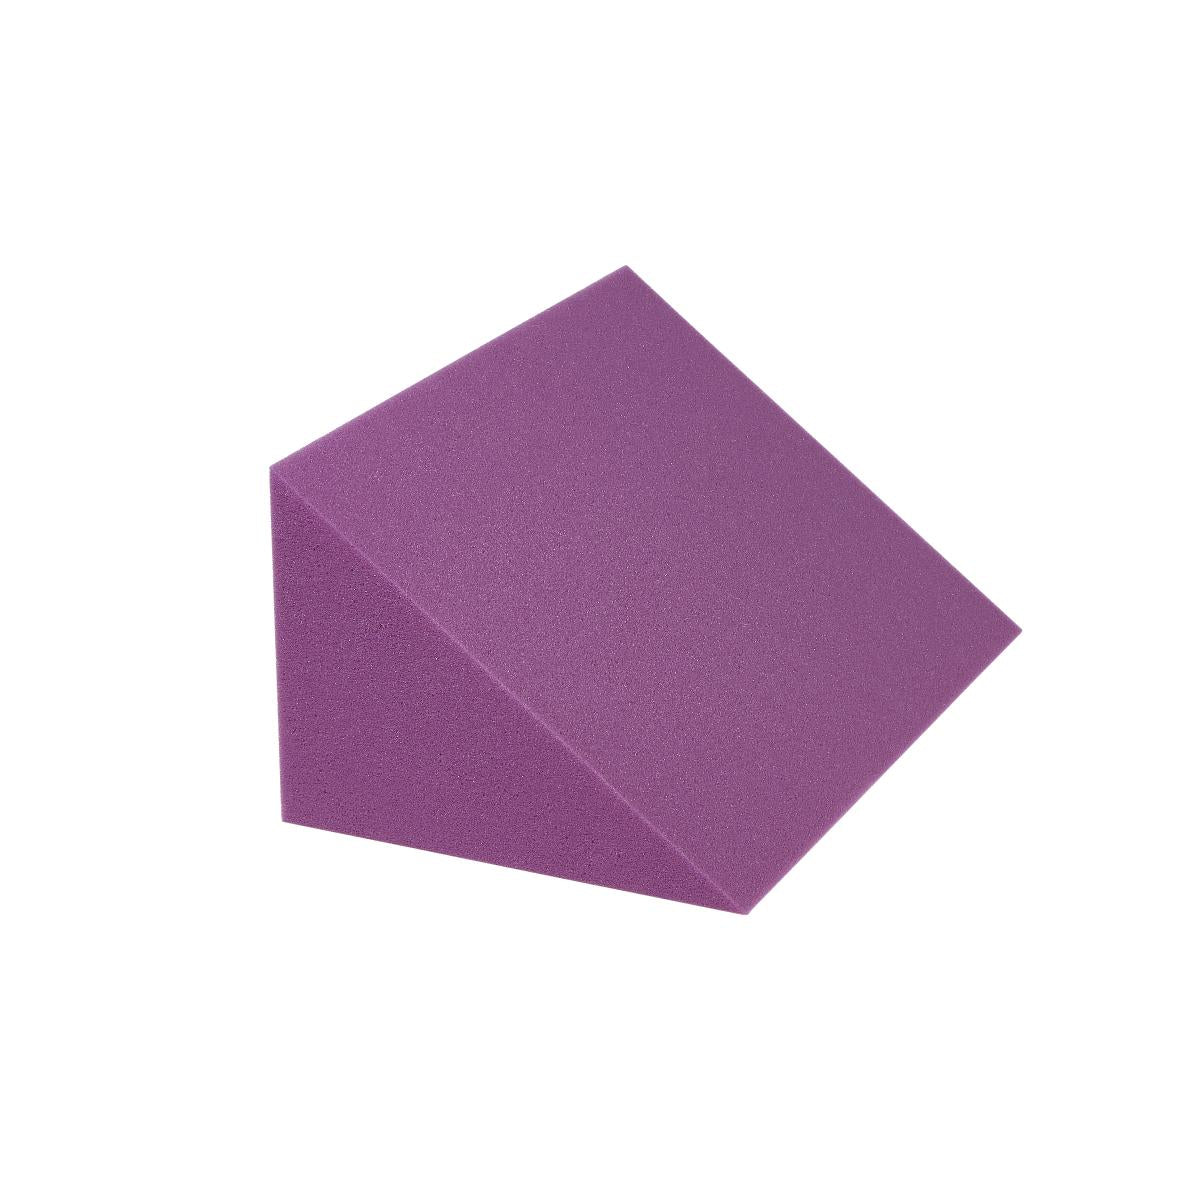 Disposable Foam Positioning Wedges - Case of 6